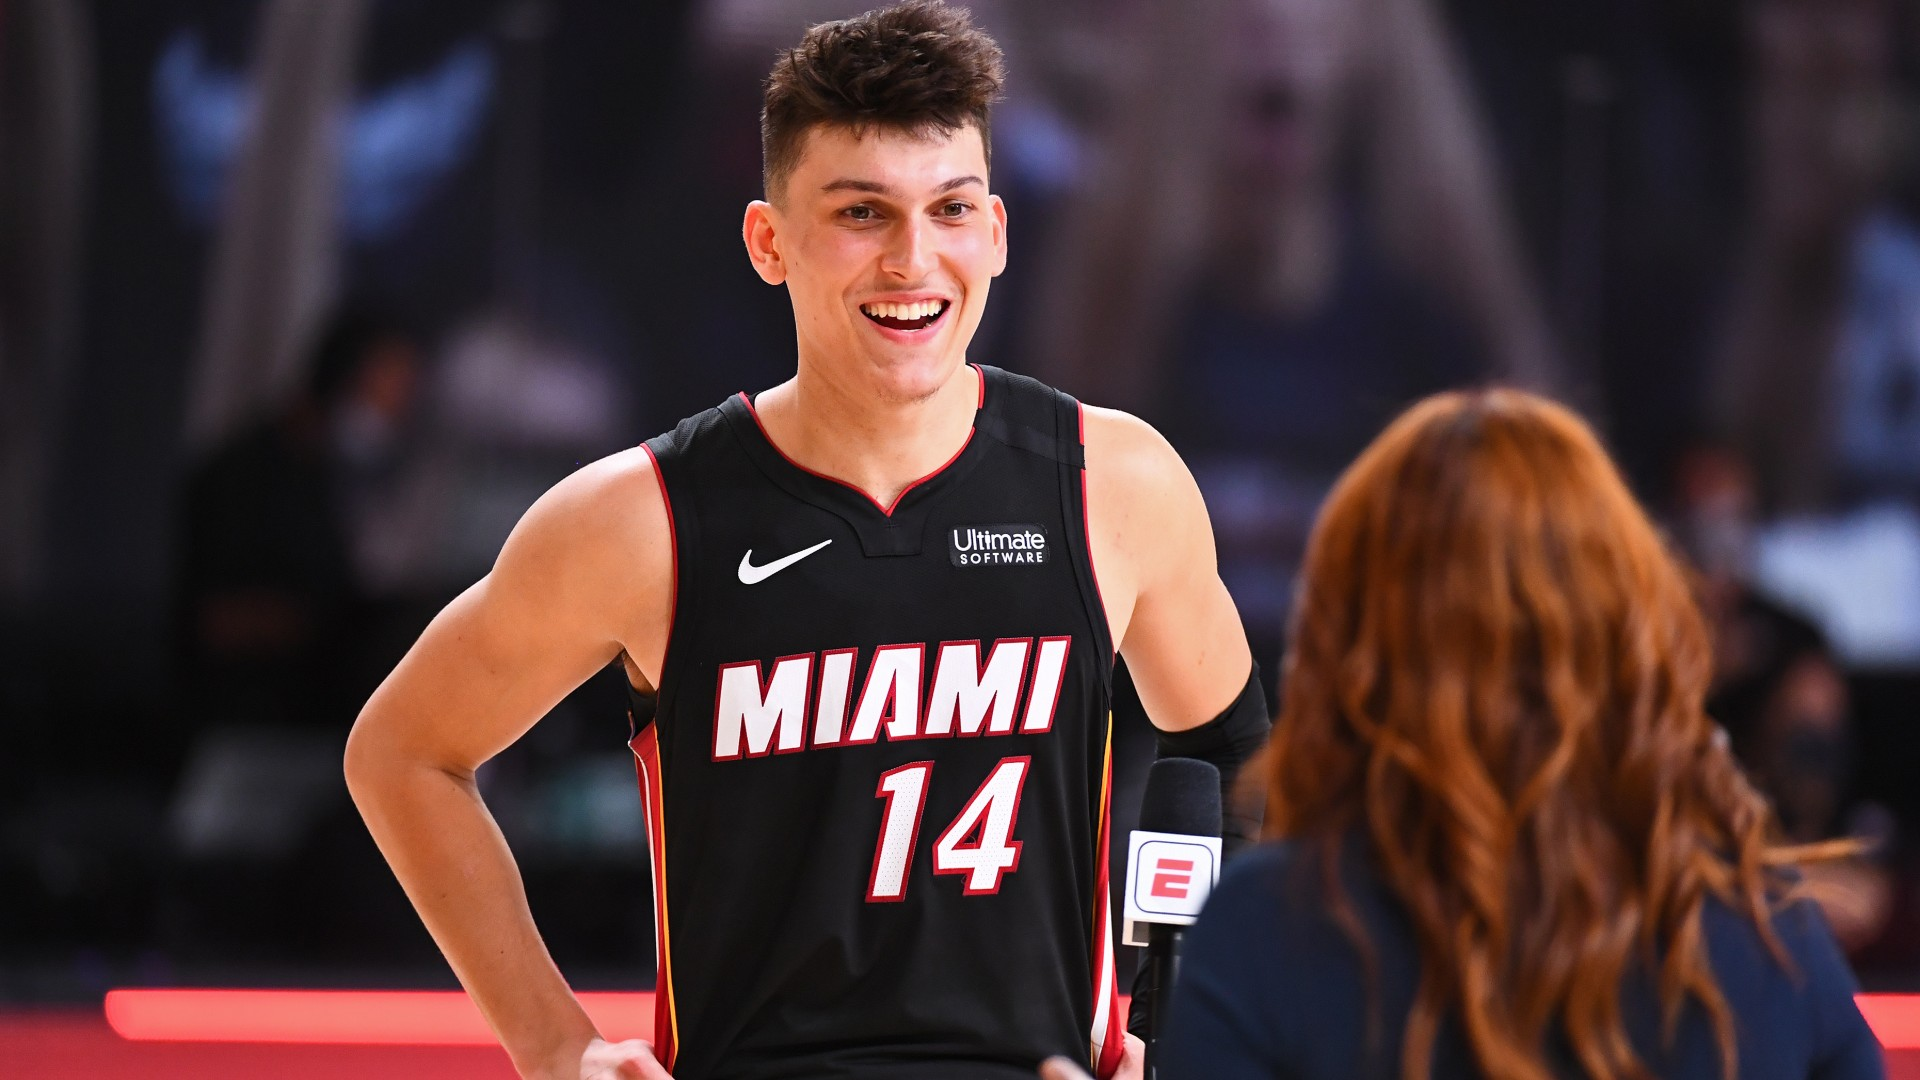 Get to know Tyler Herro: Fast facts on the Miami Heat's rookie sensation |  NBA.com Australia | The official site of the NBA